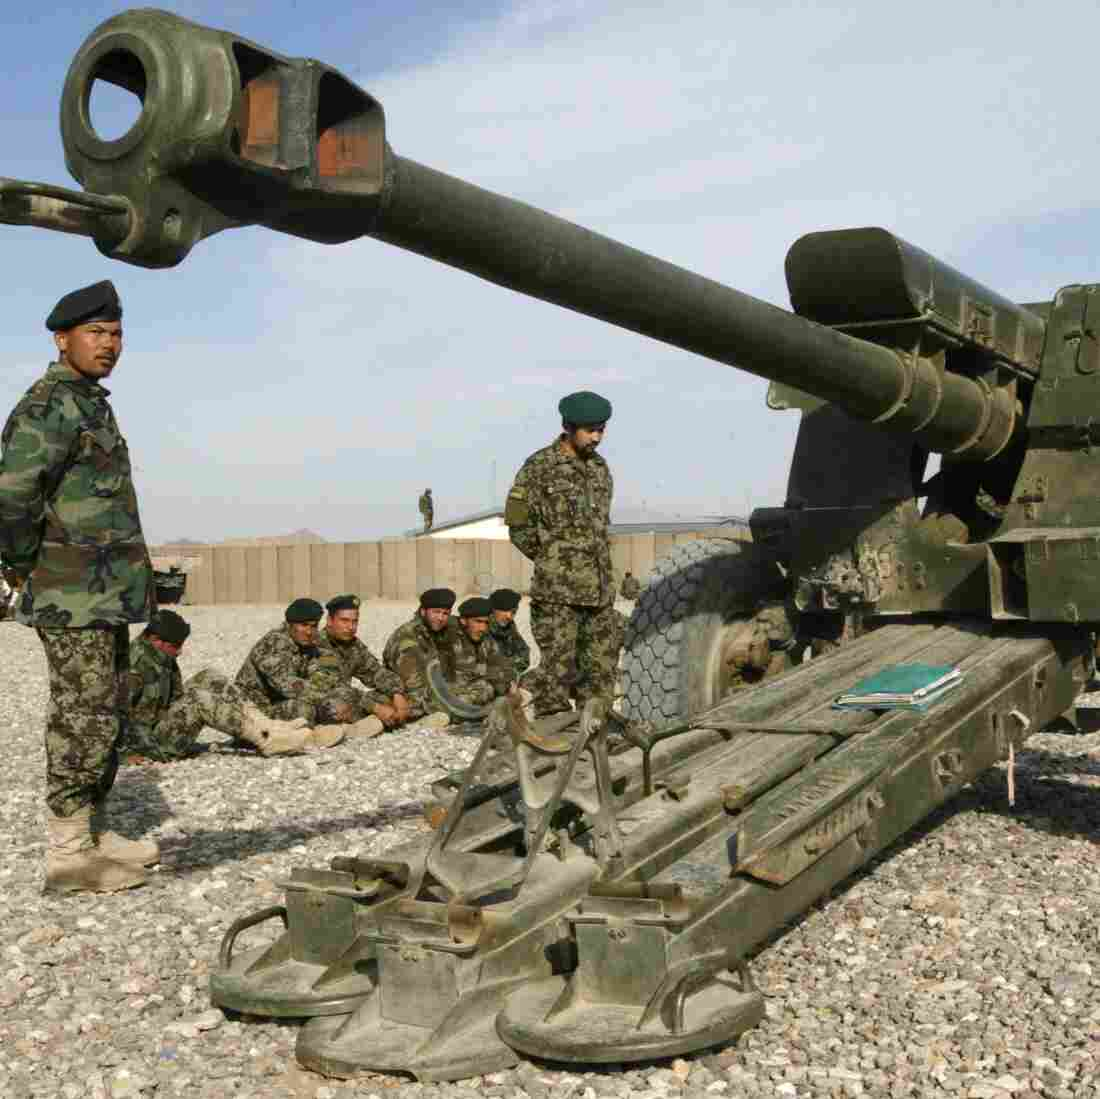 U.S., Afghanistan At Odds Over Weapons Wish List